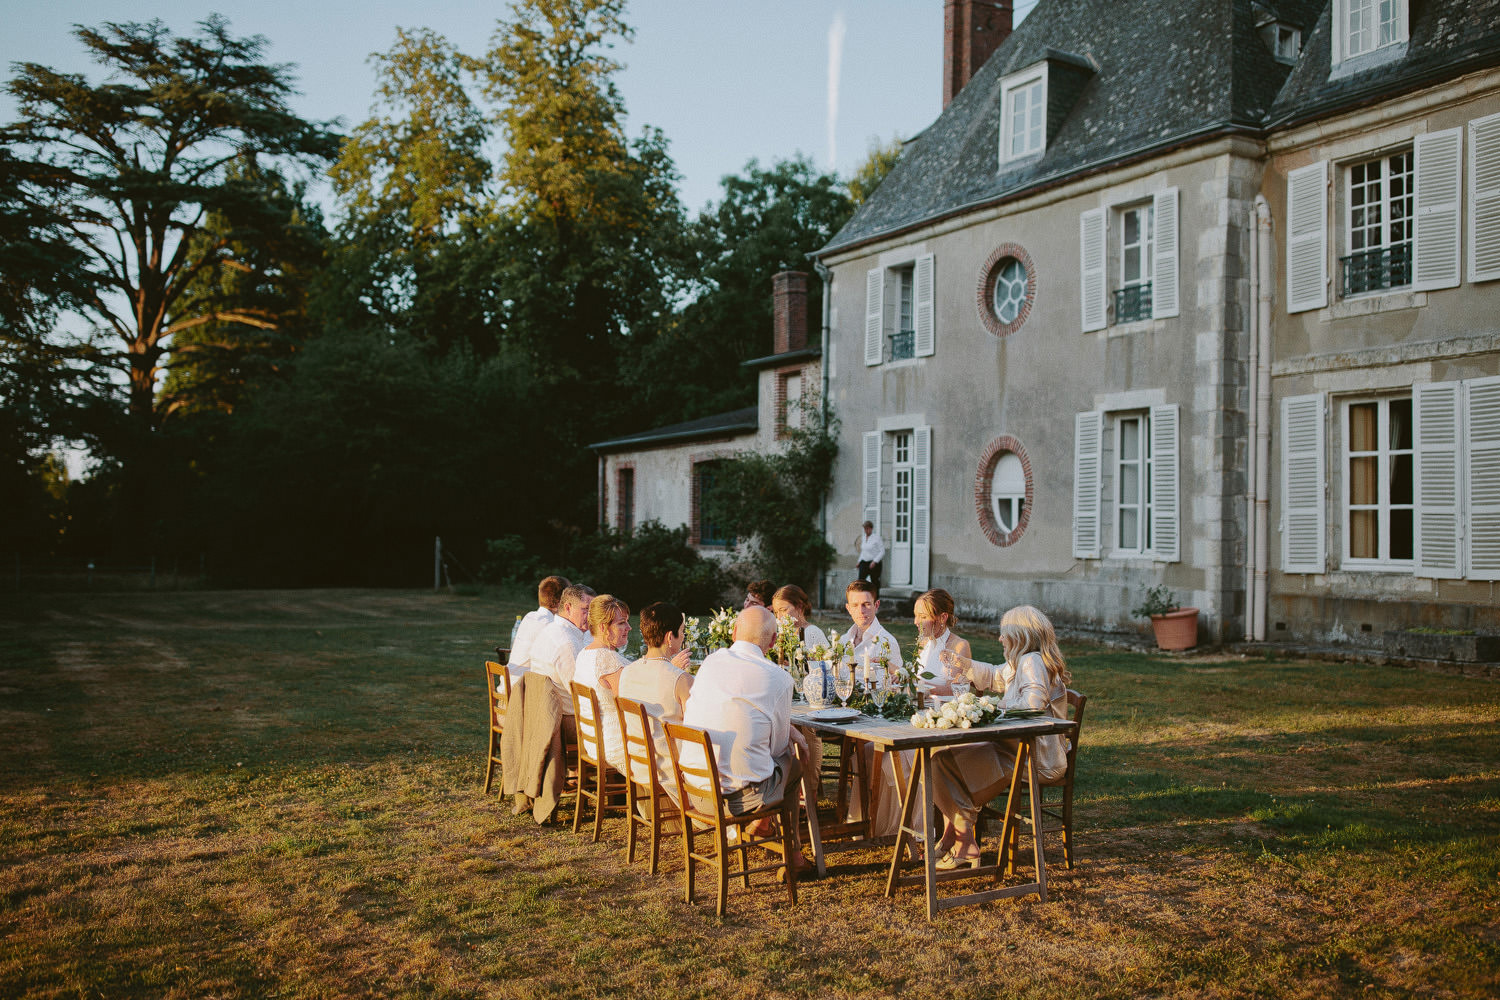 Outdoor wedding dinner at Chateau de Bouthonvilliers